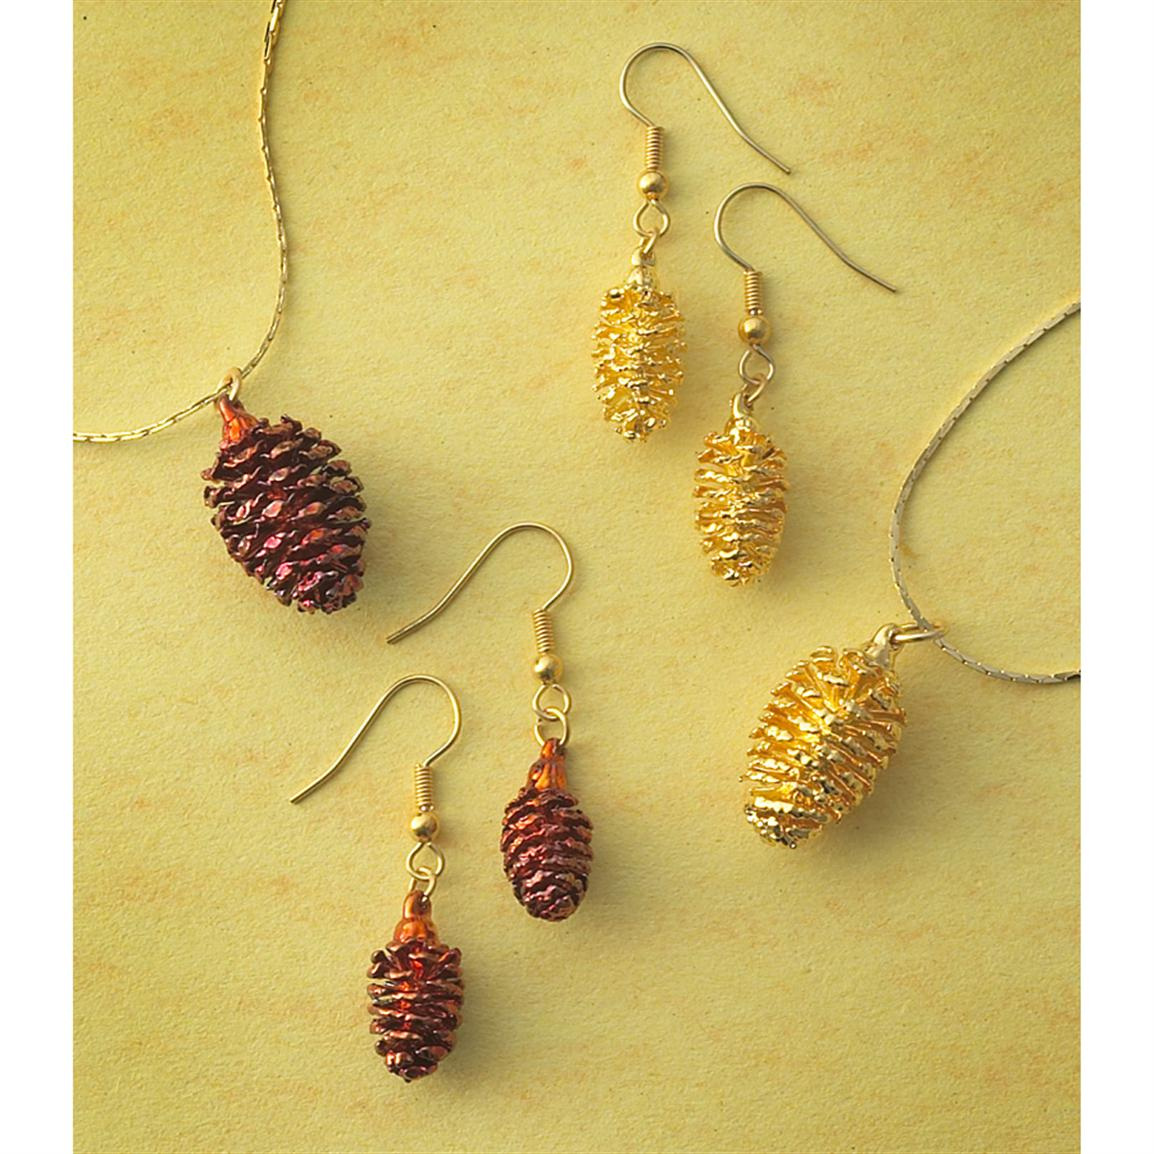 The Rose Lady 3-Pc. Pine Cone Jewelry Set